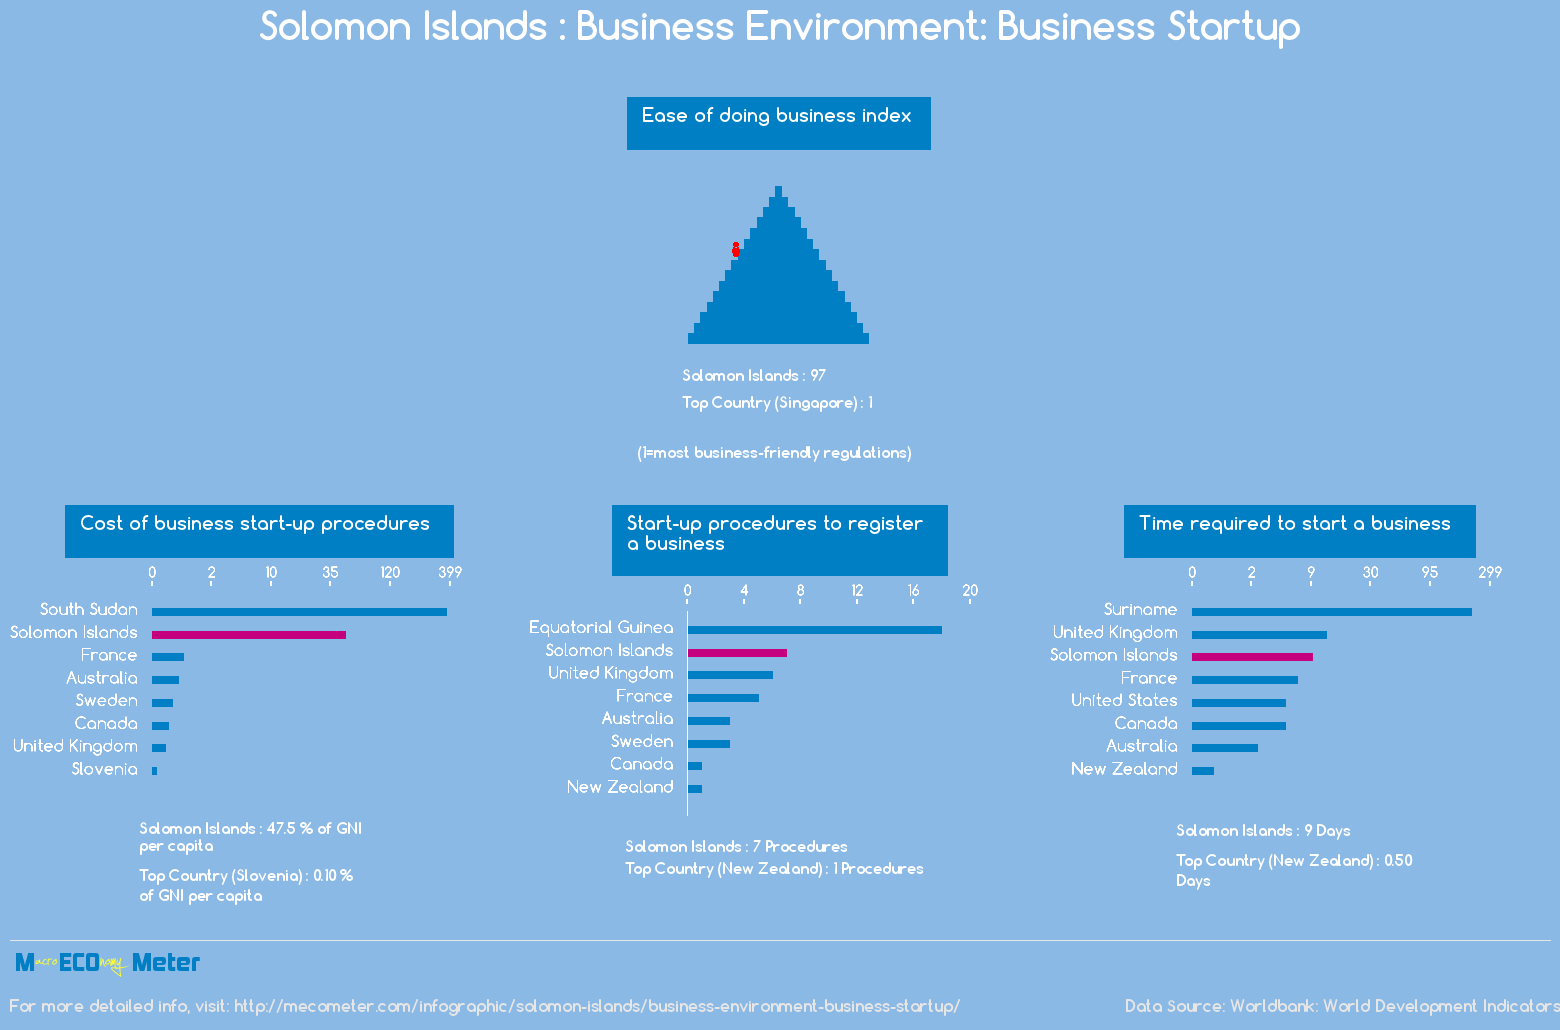 Solomon Islands : Business Environment: Business Startup